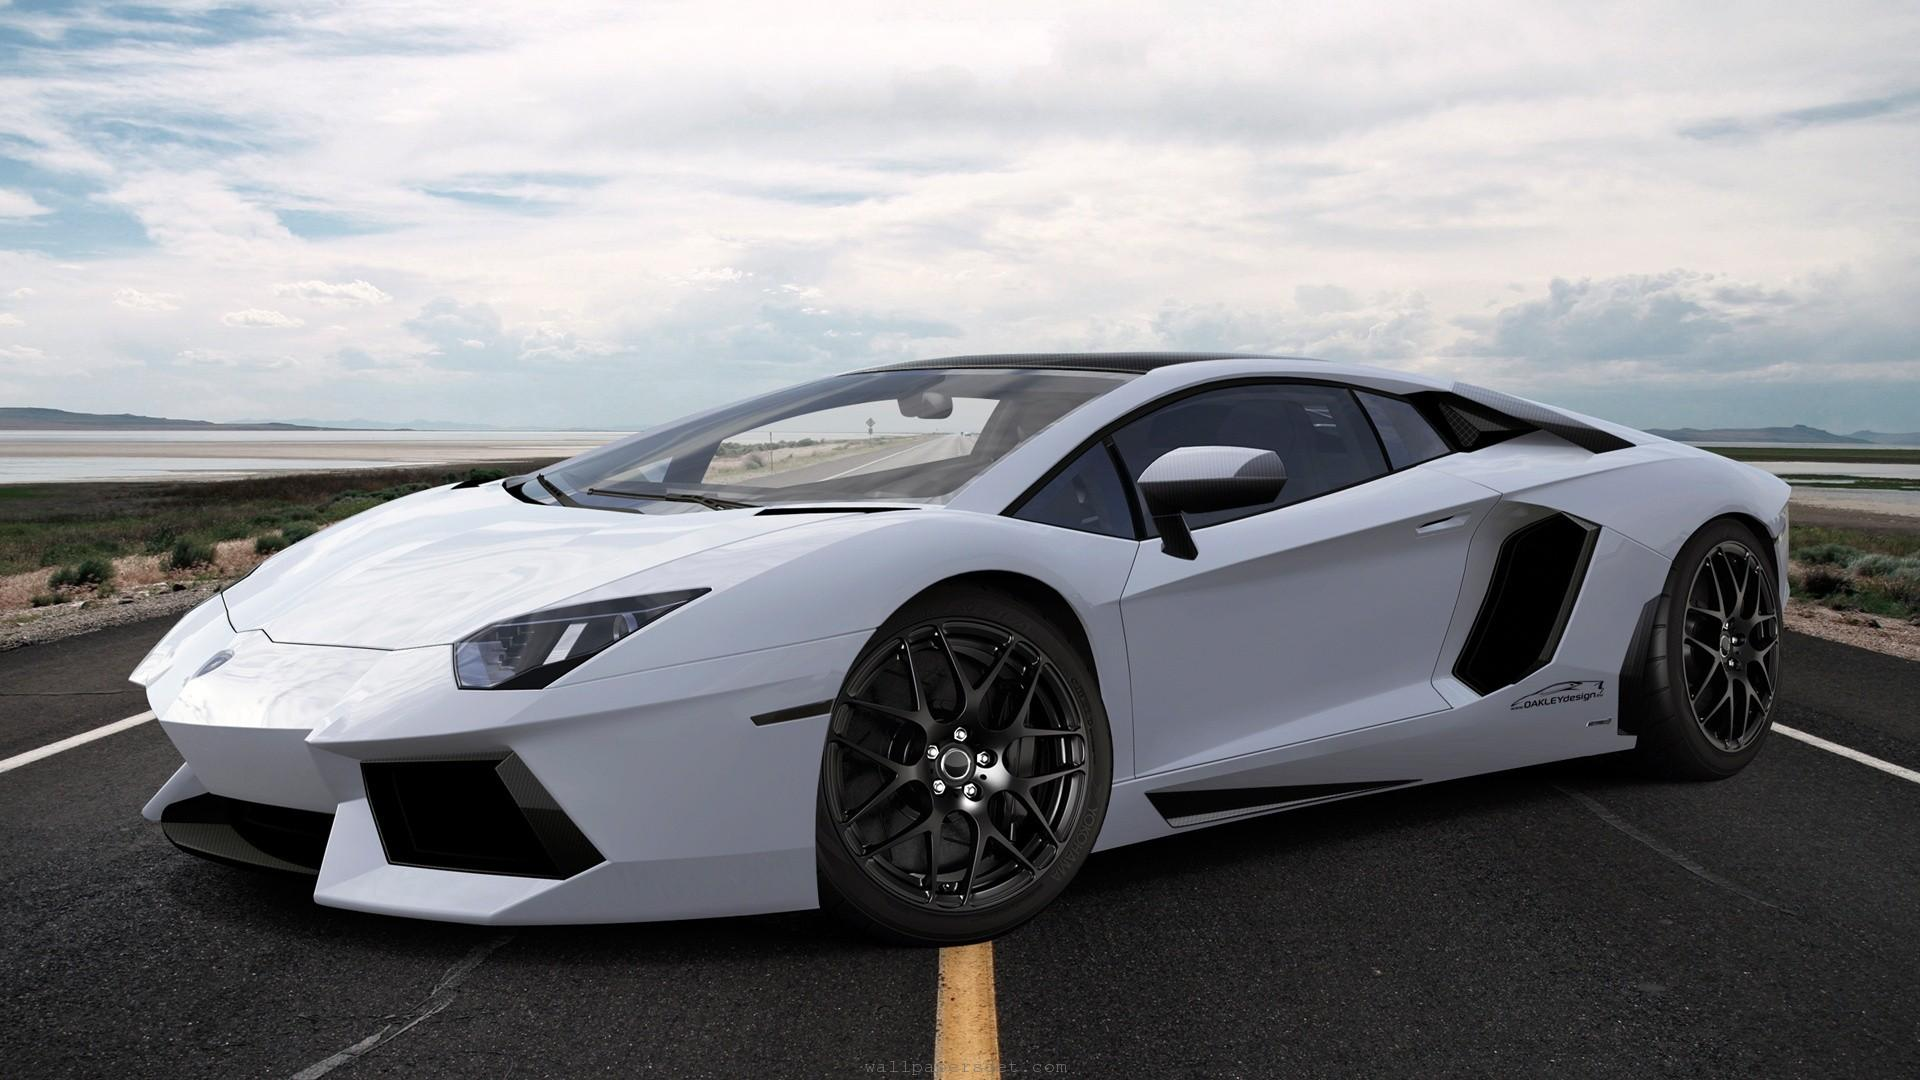 Lamborghini Aventador White 2014 Wallpaper Free For Android